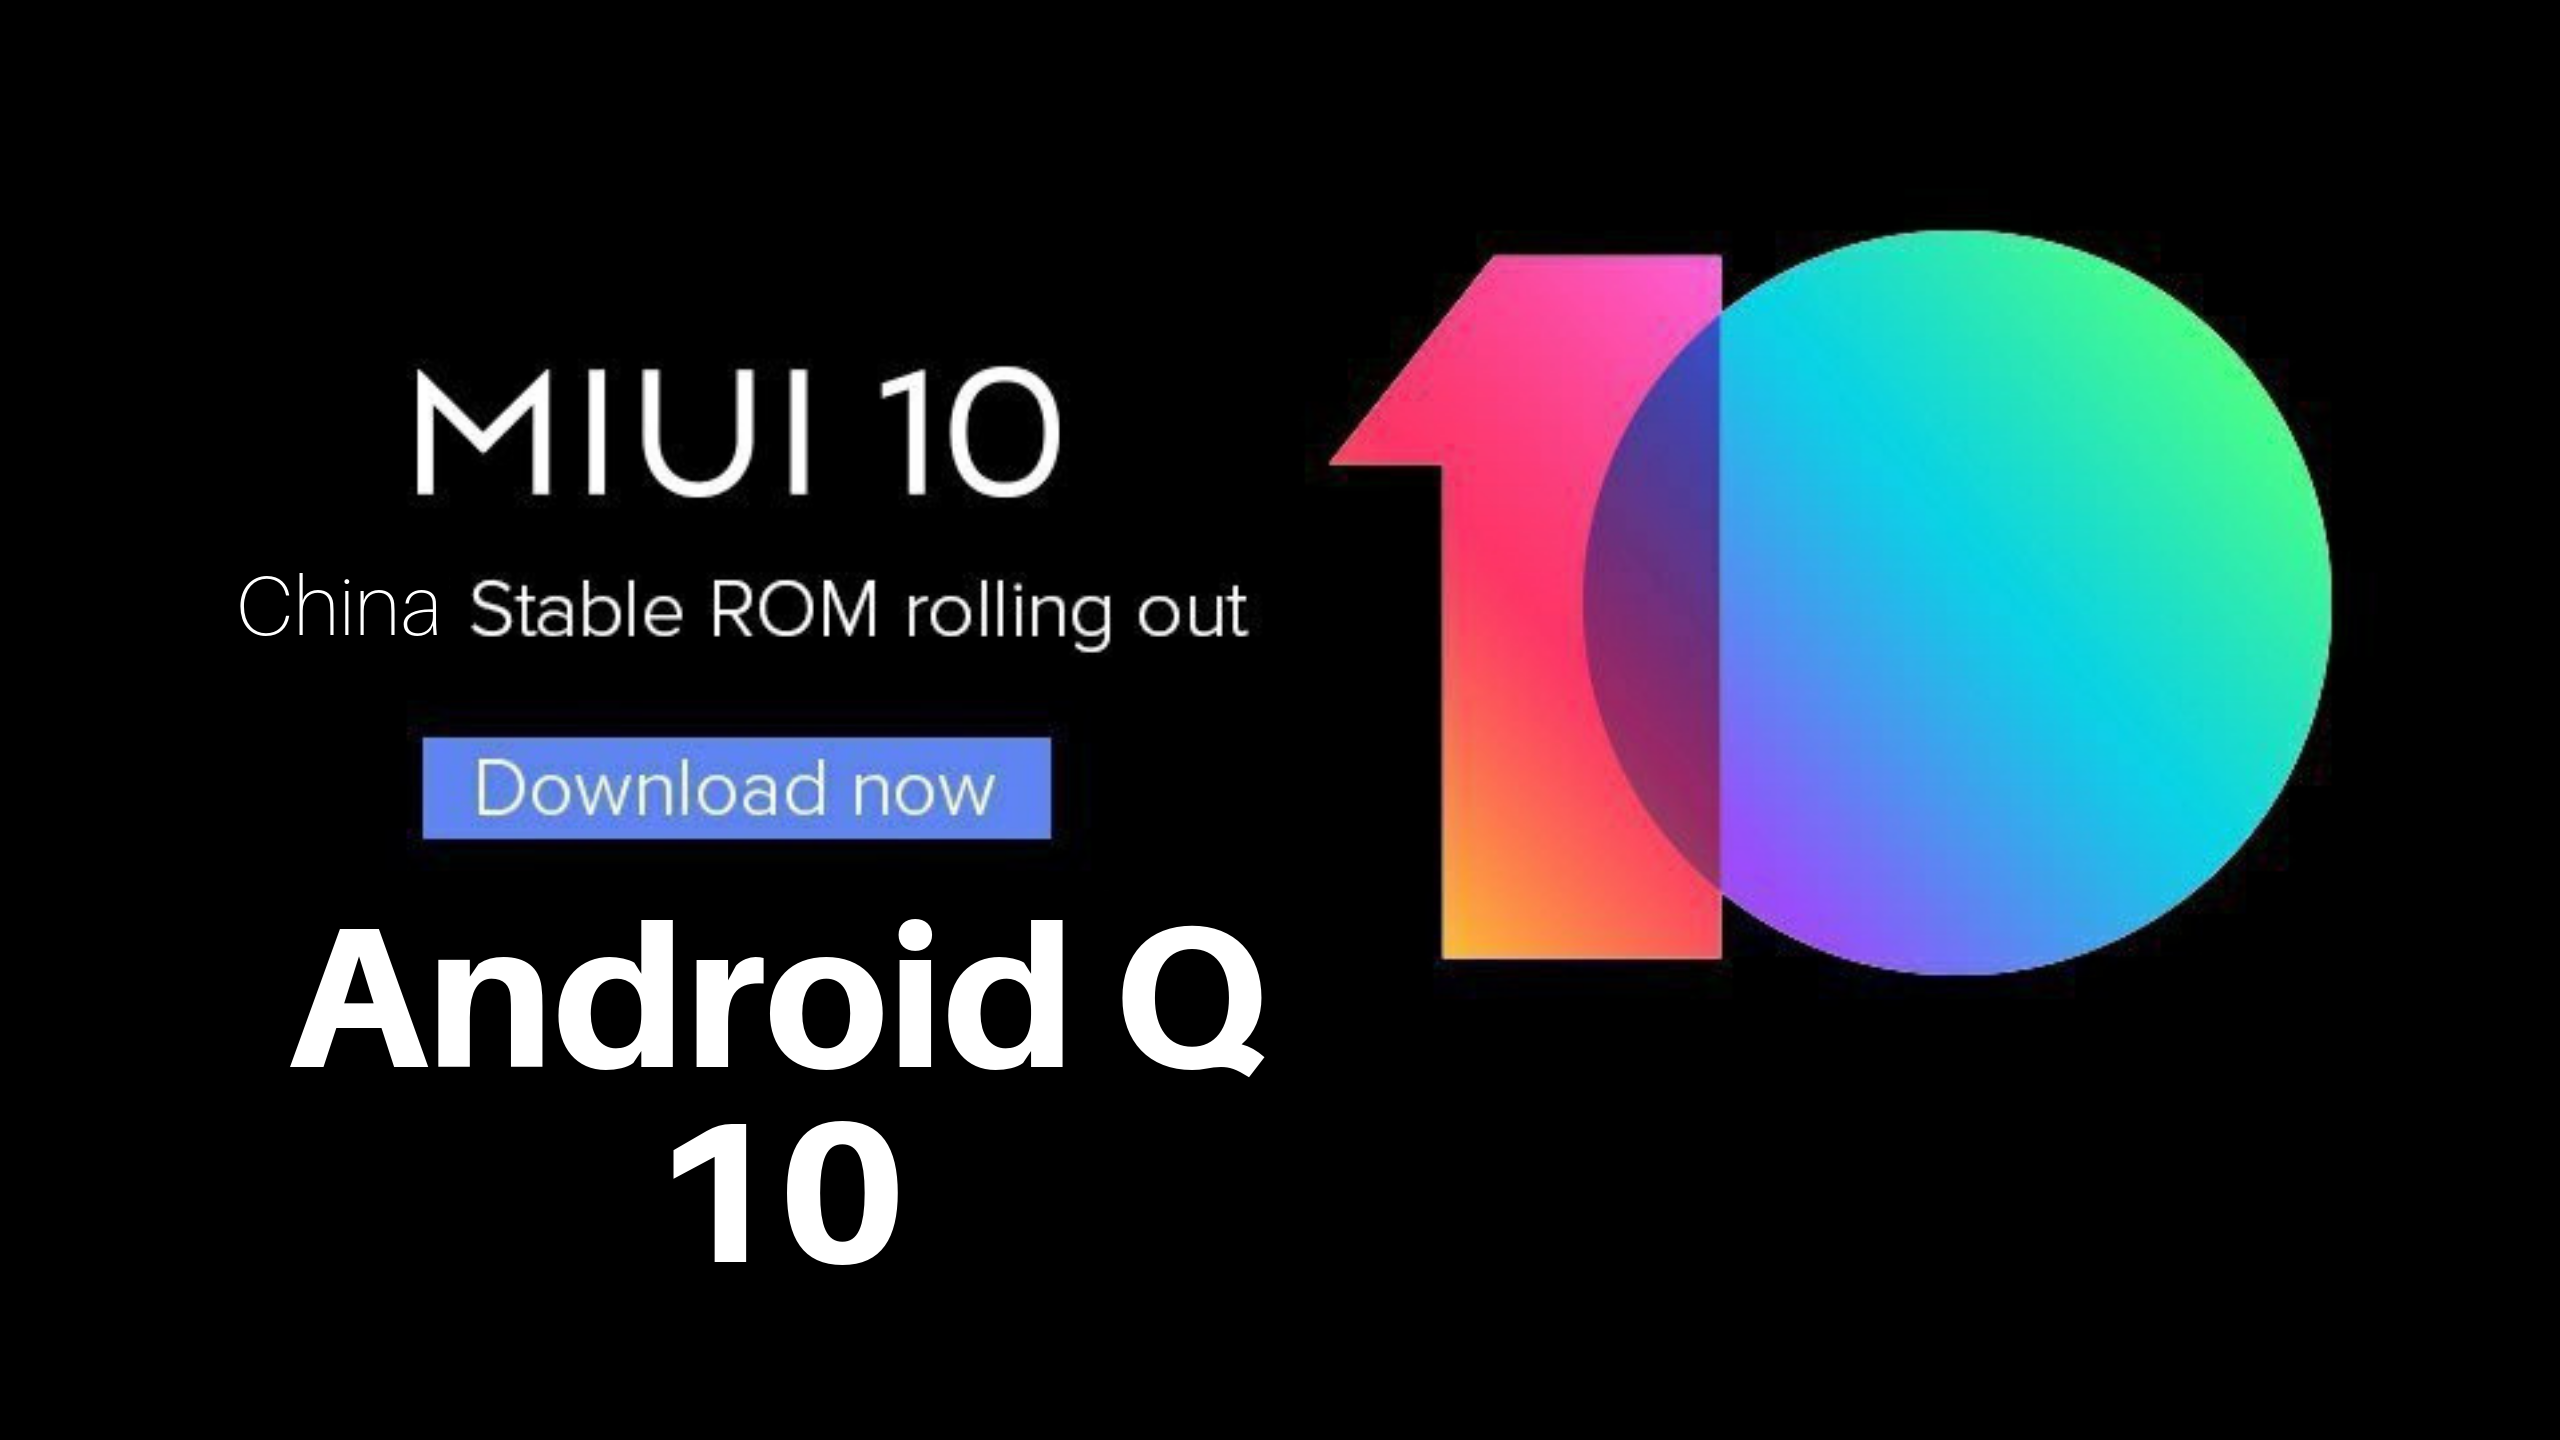 Android Q Miui 10 4 4 0 China Stable Update for Redmi K20